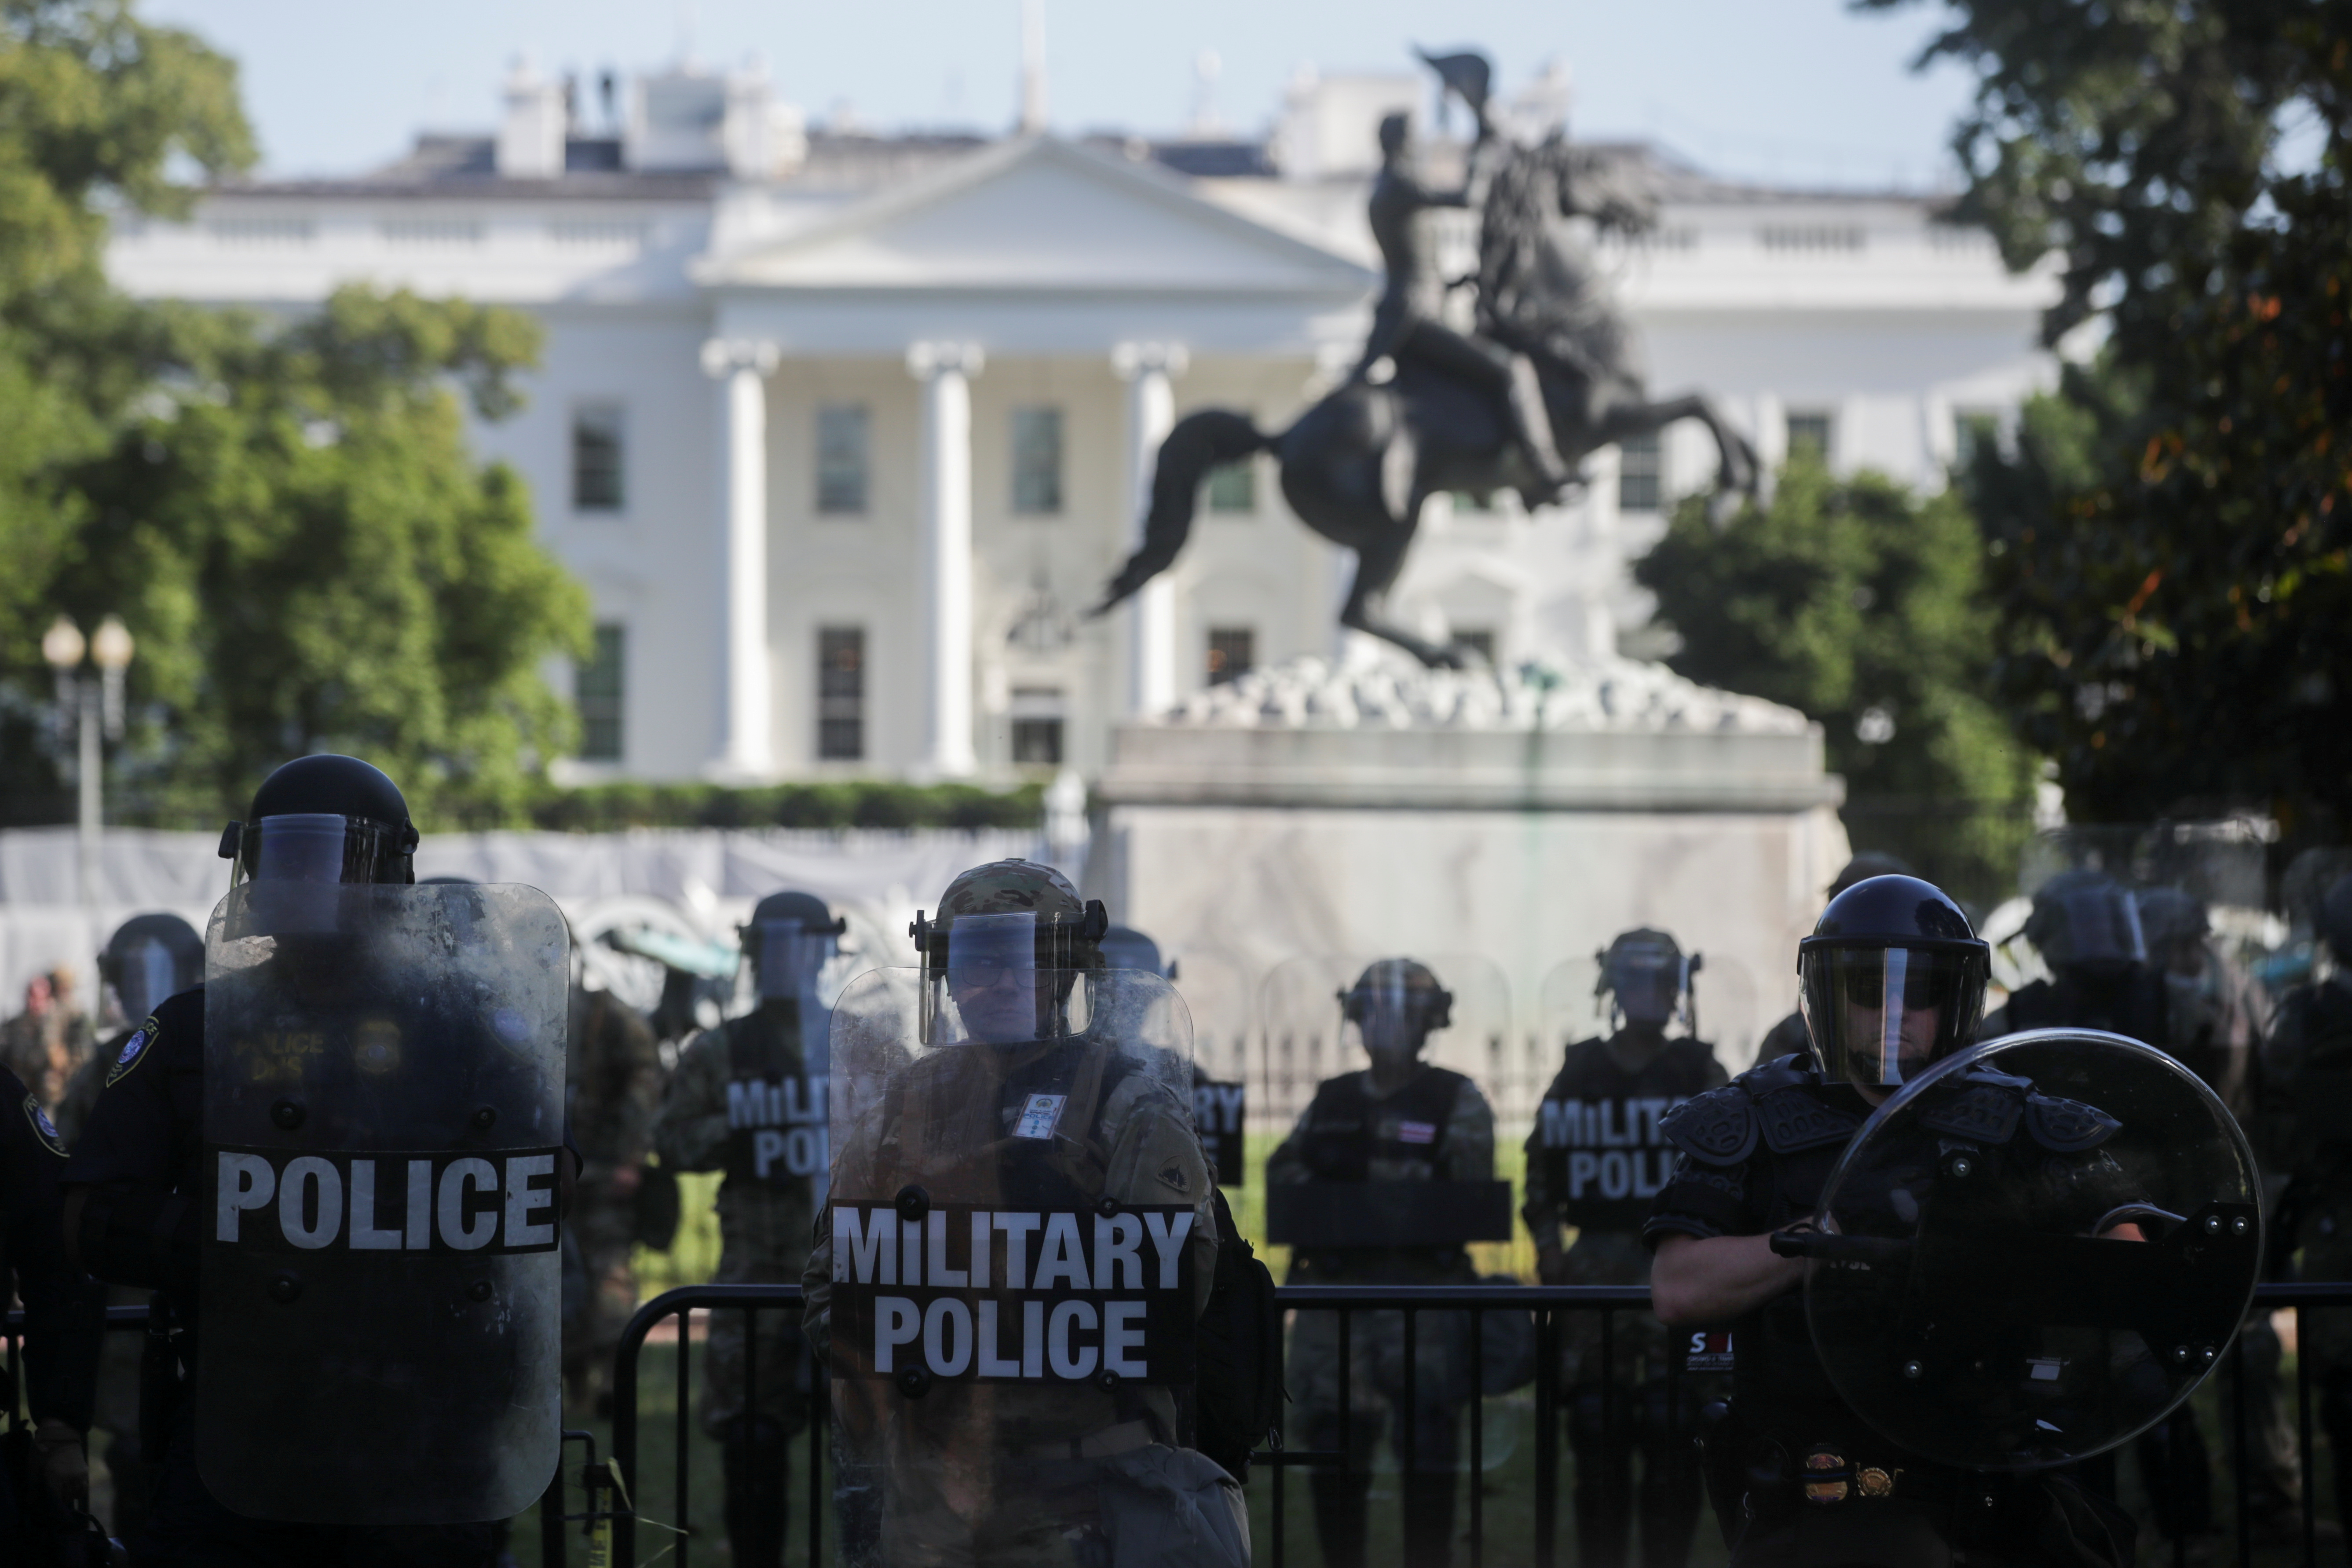 FILE PHOTO: DC National Guard military police officers look on as demonstrators rally near the White House against the death in Minneapolis police custody of George Floyd, in Washington, D.C., U.S., June 1, 2020. REUTERS/Jonathan Ernst/File Photo